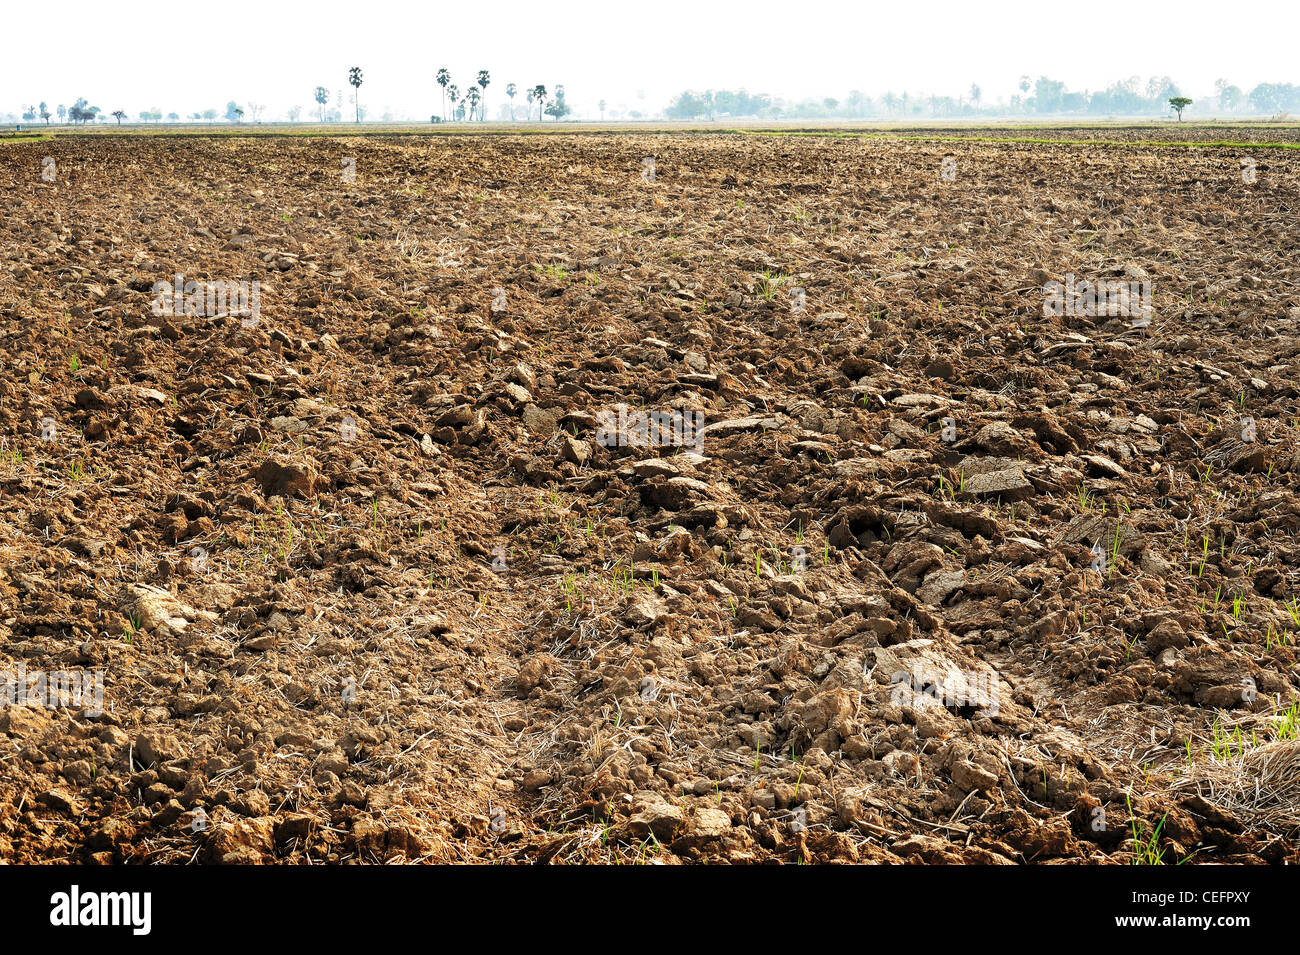 Brown soil of an agricultural field - Stock Image